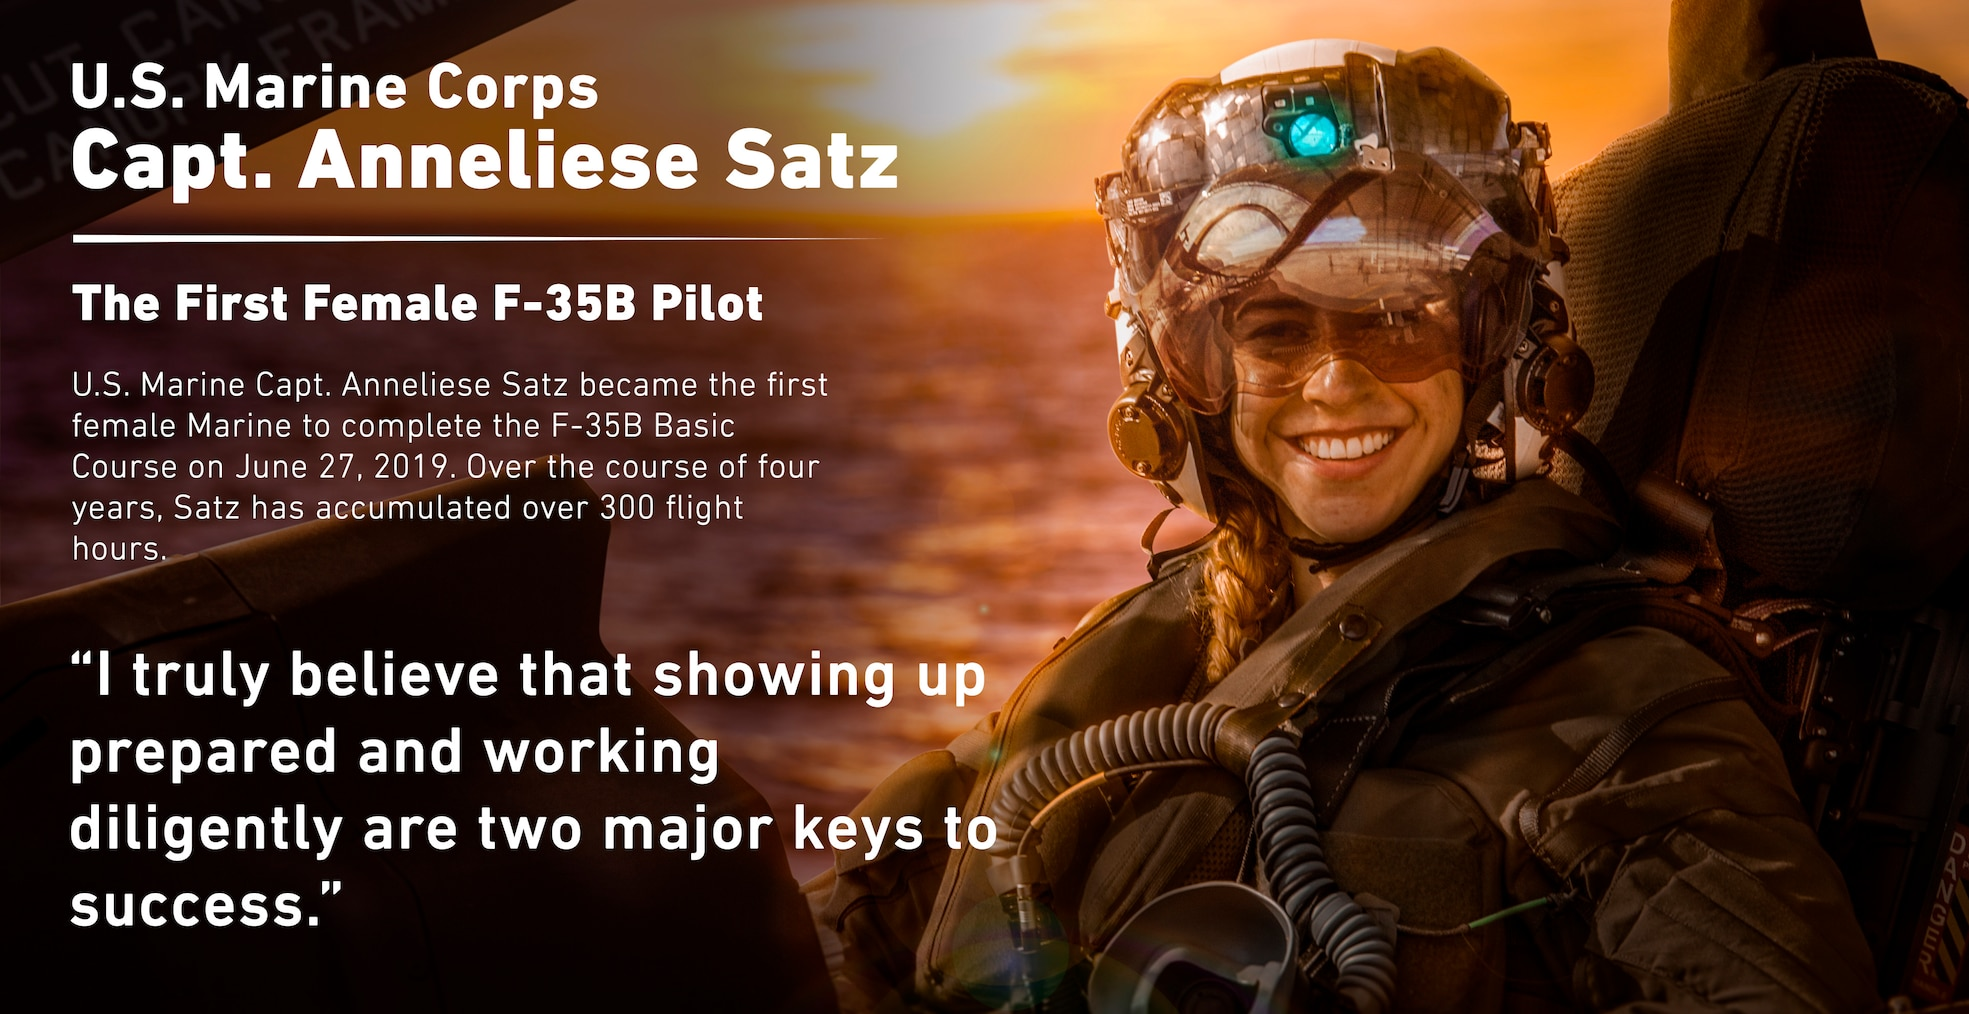 In honor of women's history month, this photo illustration features U.S. Marine Capt. Anneliese Satz, the first female Marine F-35B pilot. Satz graduated the F-35B Lighting II Pilot Training Program on June 27, 2019 with over 300 flight hours under her belt. This is just one of many historical milestones of women in the Marine Corps. (U.S. Marine Corps photo illustration by Cpl. Phuchung Nguyen)